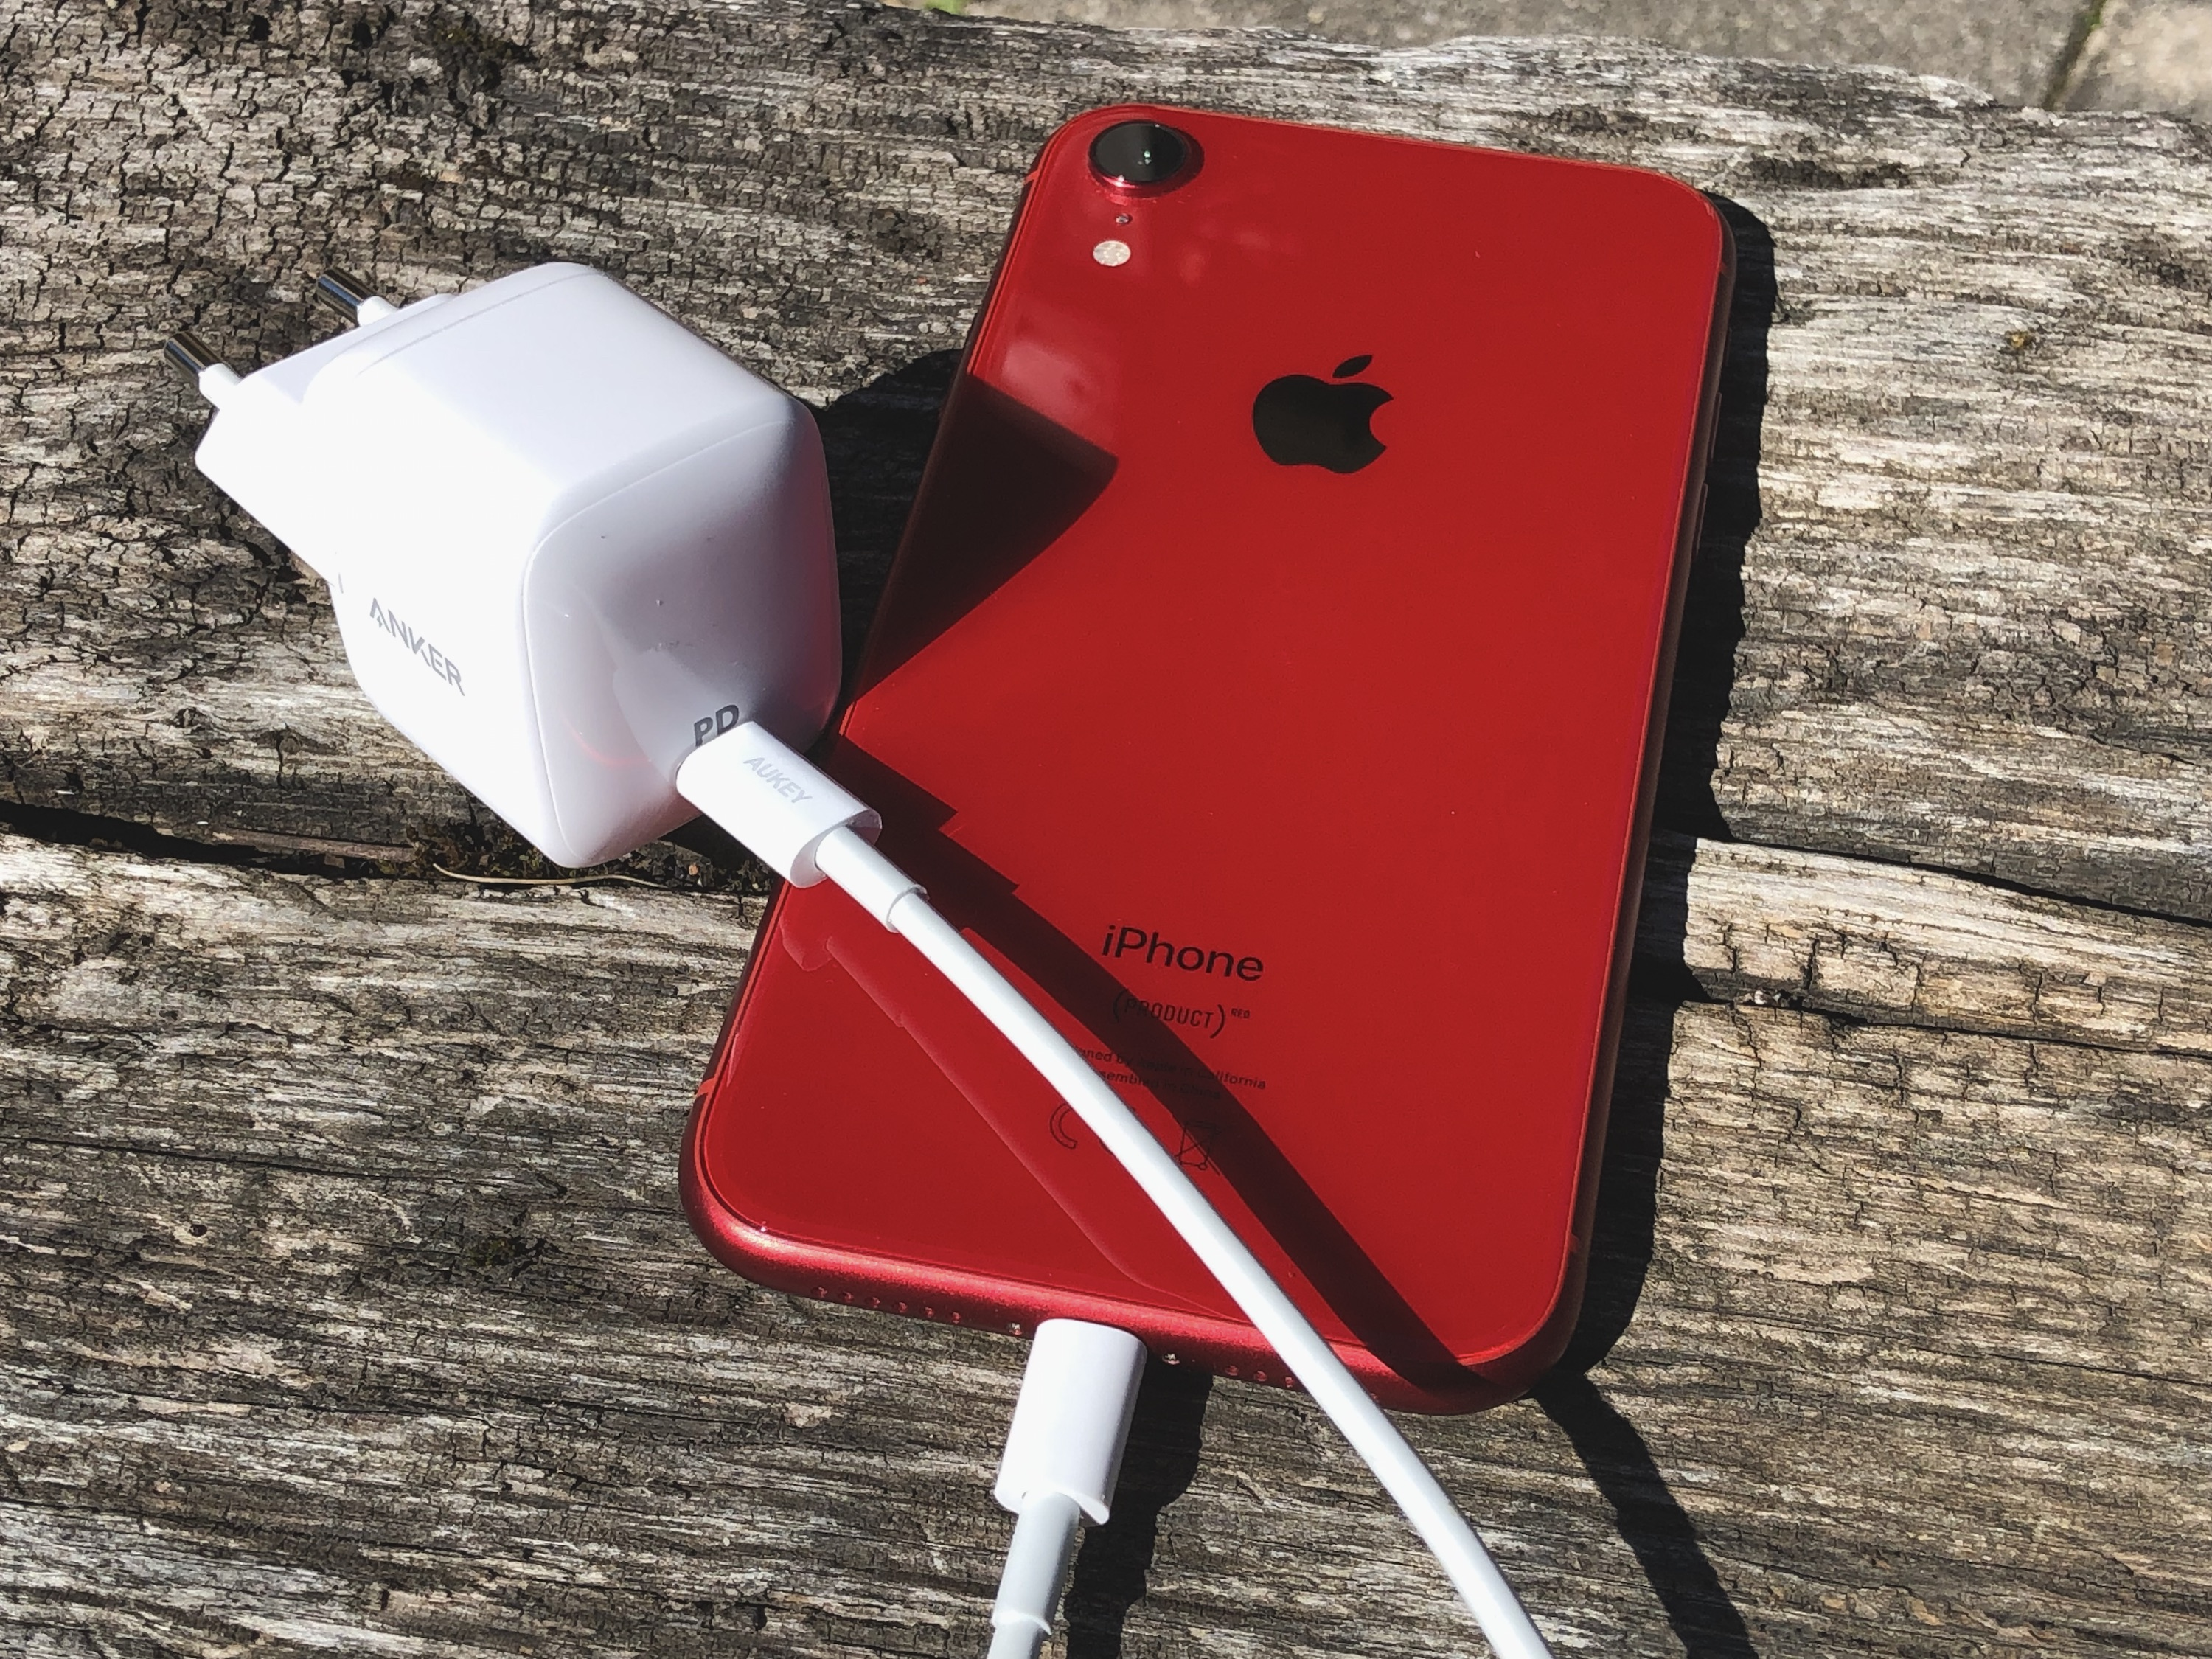 En promo coupon - Chargeur Anker Atom 1 : ultra compact et rapide compatible iPhone, iPad et Mac (photos) 1